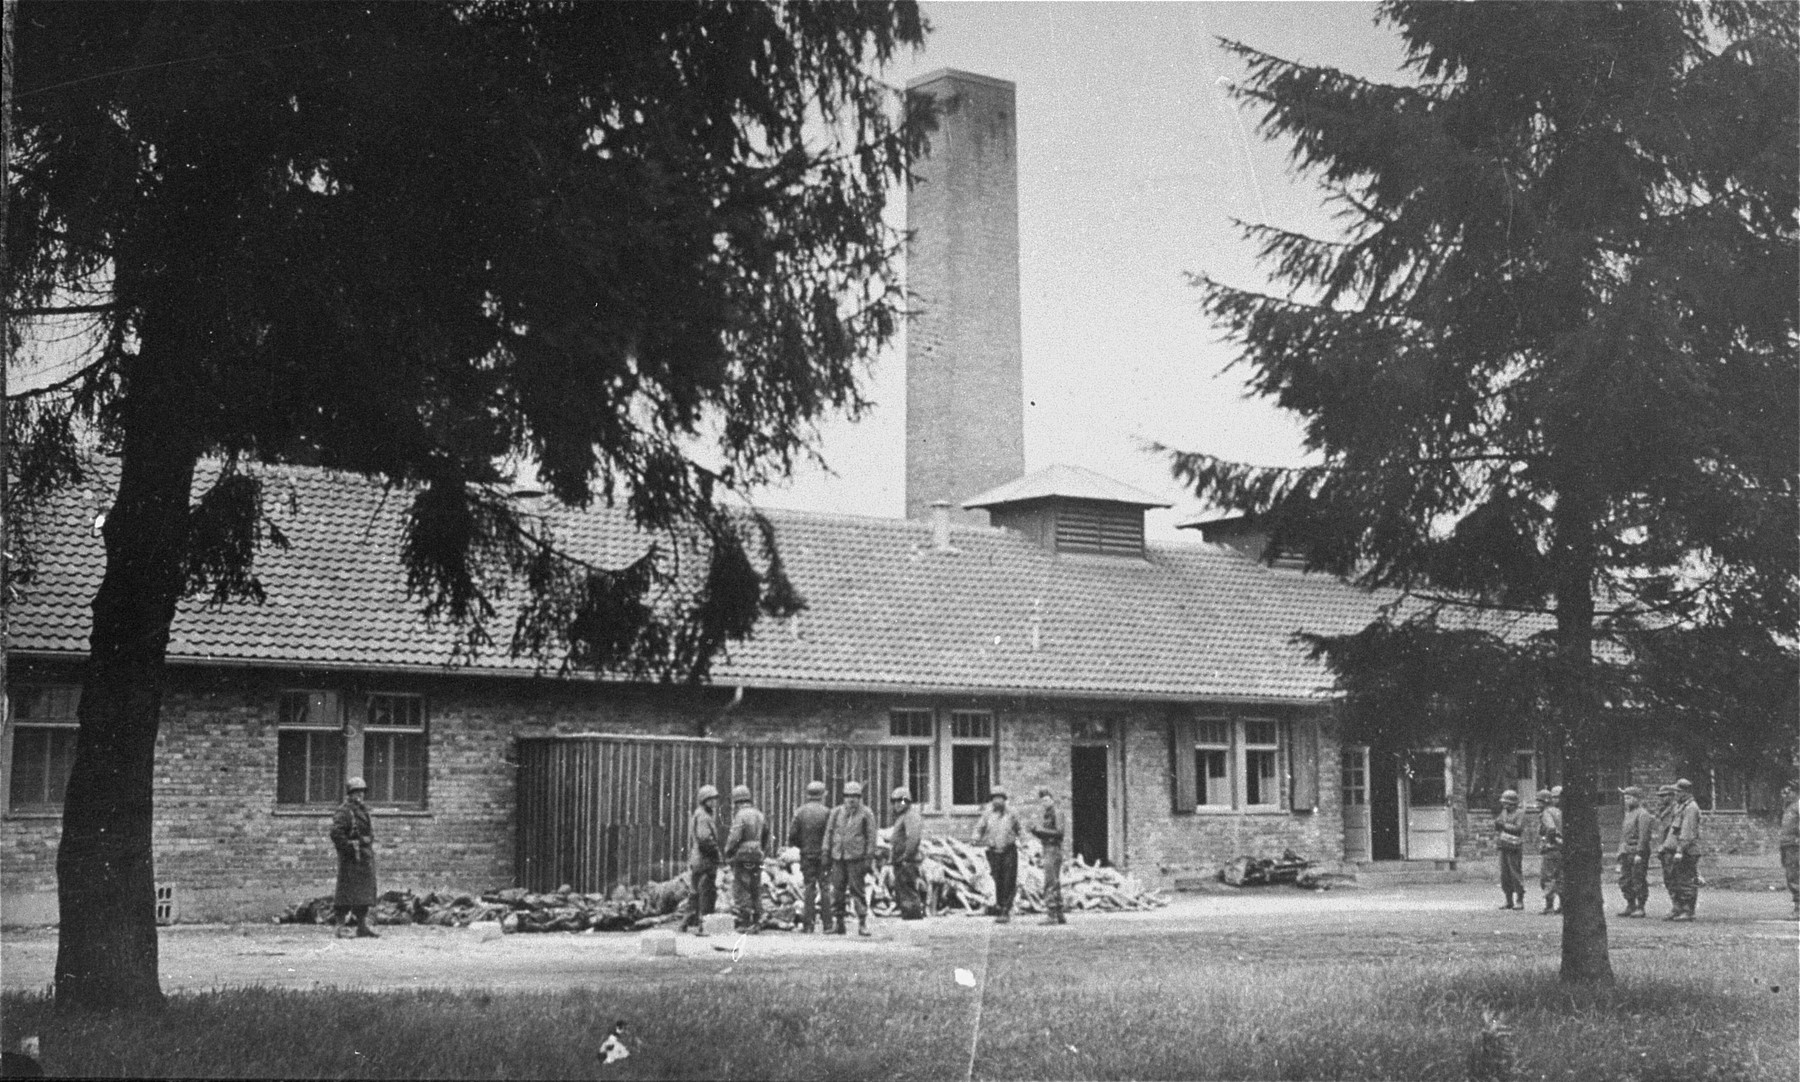 American soldiers in front of the crematorium in Dachau.  The corpses on the left are of SS personnel summarily executed by American troops.